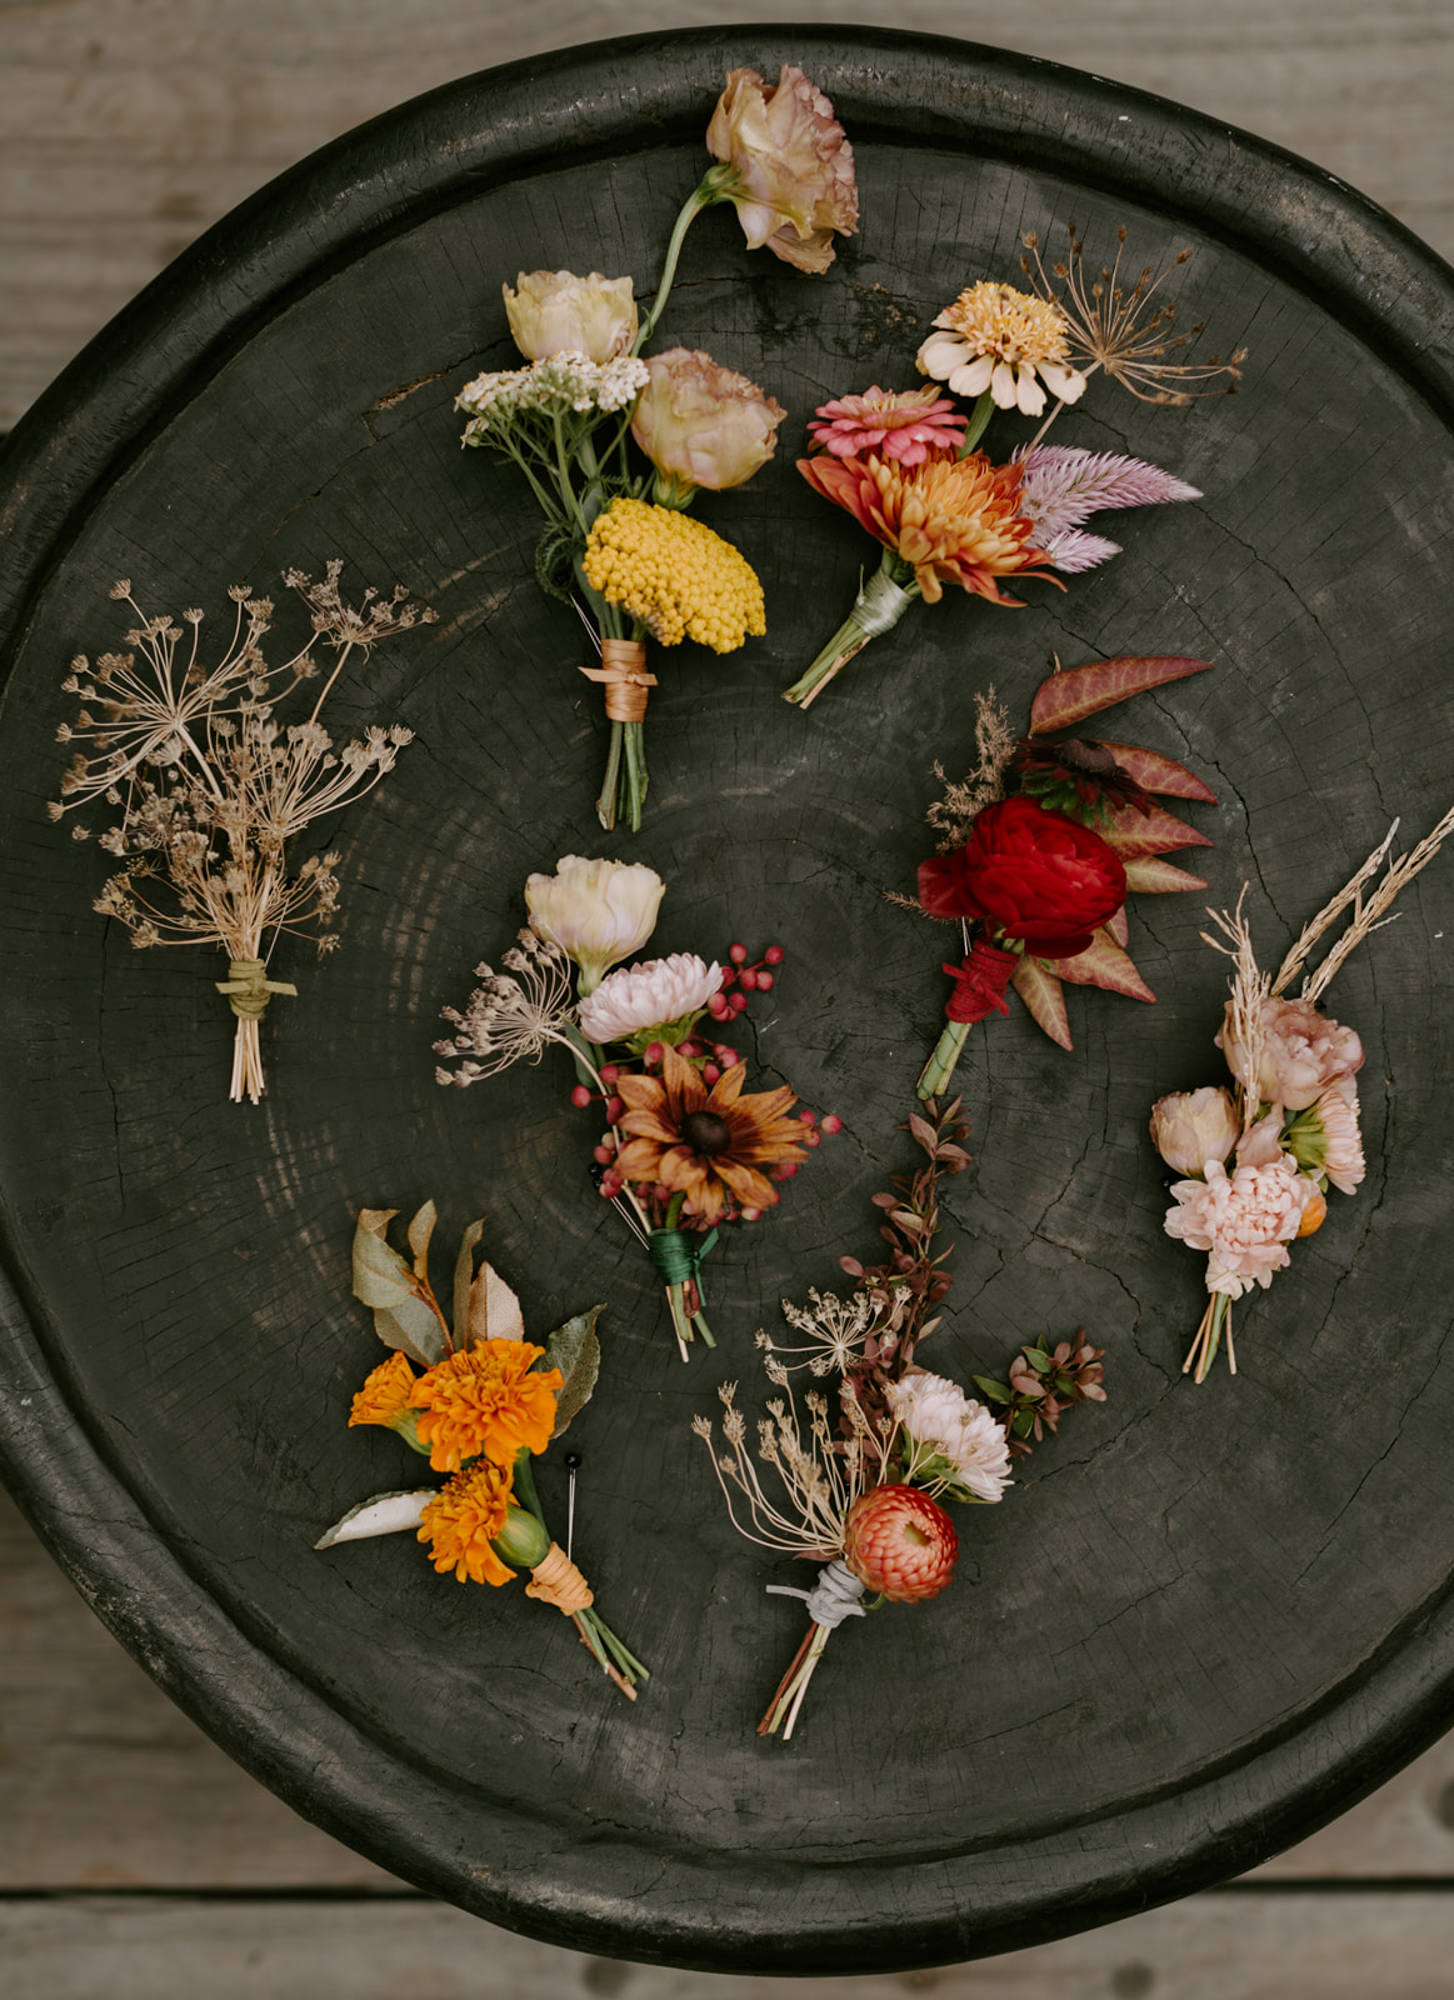 Late summer rustic boutonniers  - photo by Kristen Marie Parker